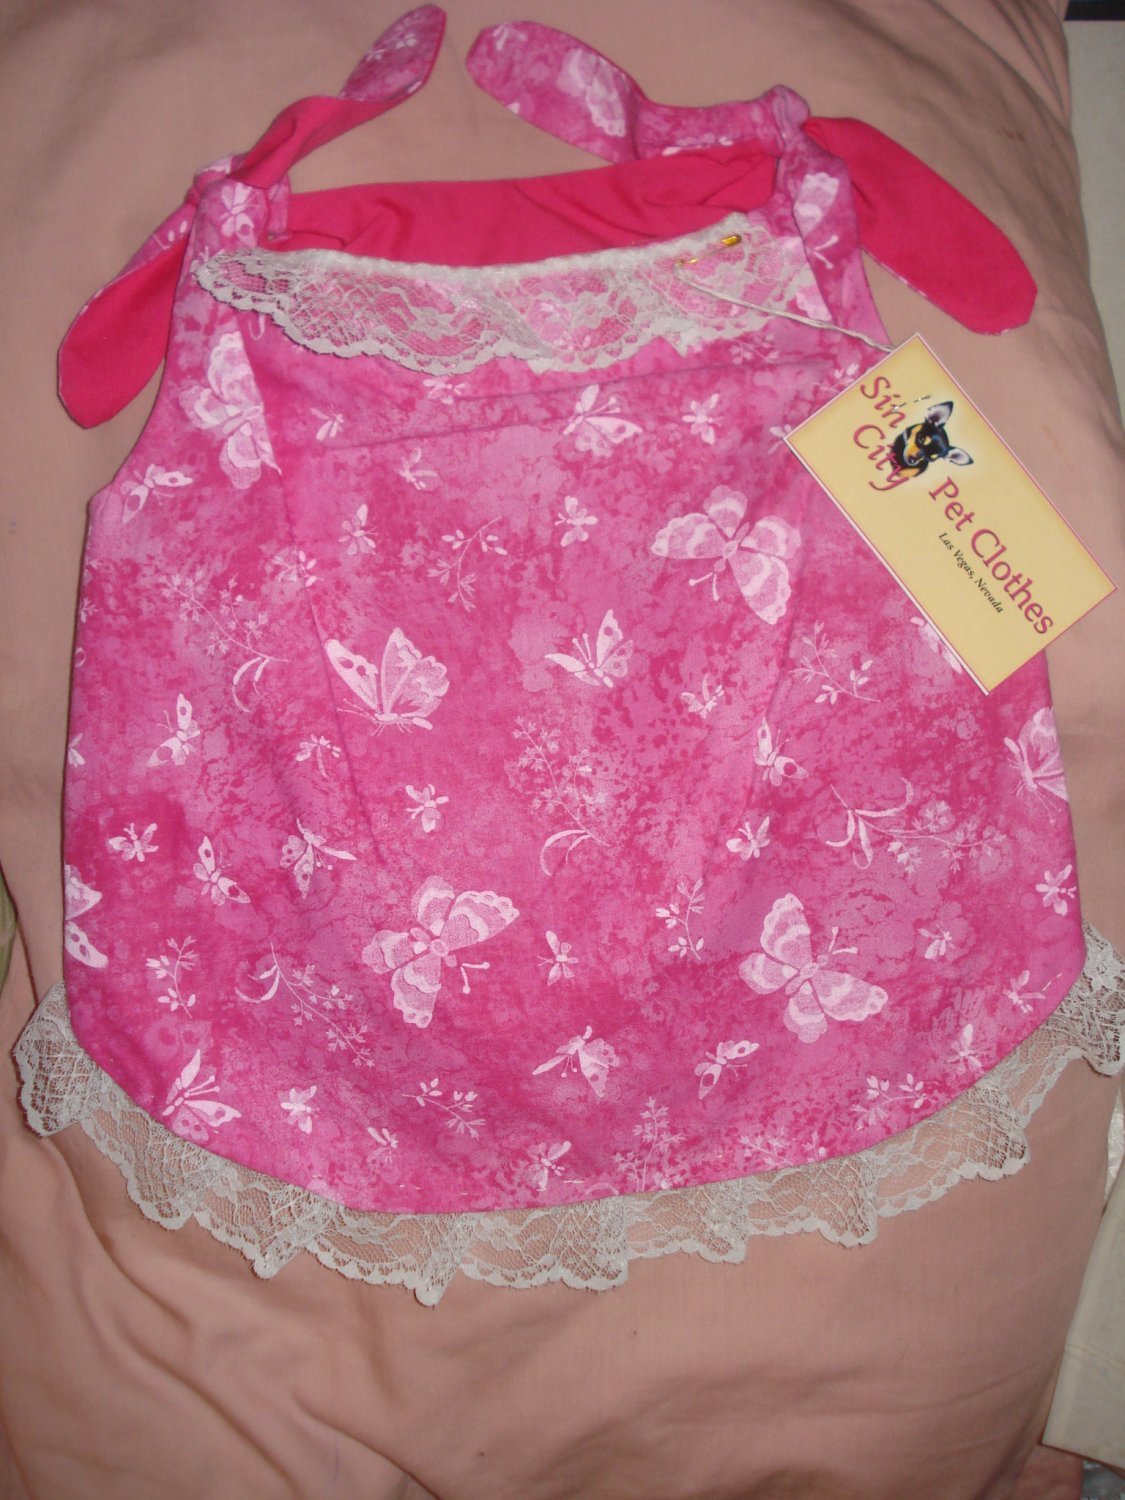 Large REVERSABLE Pet dress in hot pink with white butterflies and flowers - dd05